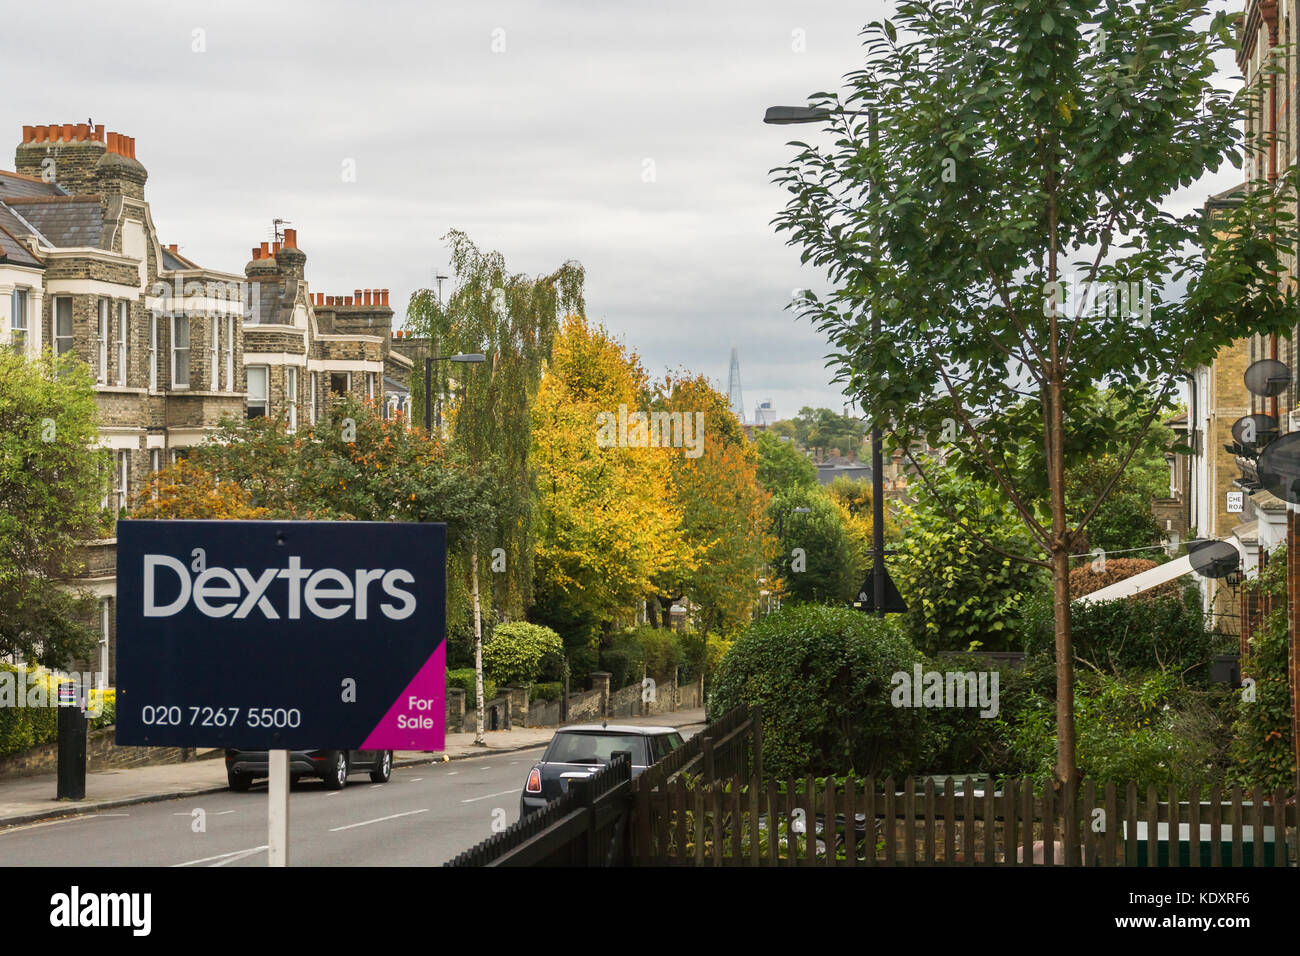 Dexters Estate Agent 'For Sale' sign in Dartmouth Park Hill during autumn in North London, England, UK - Stock Image